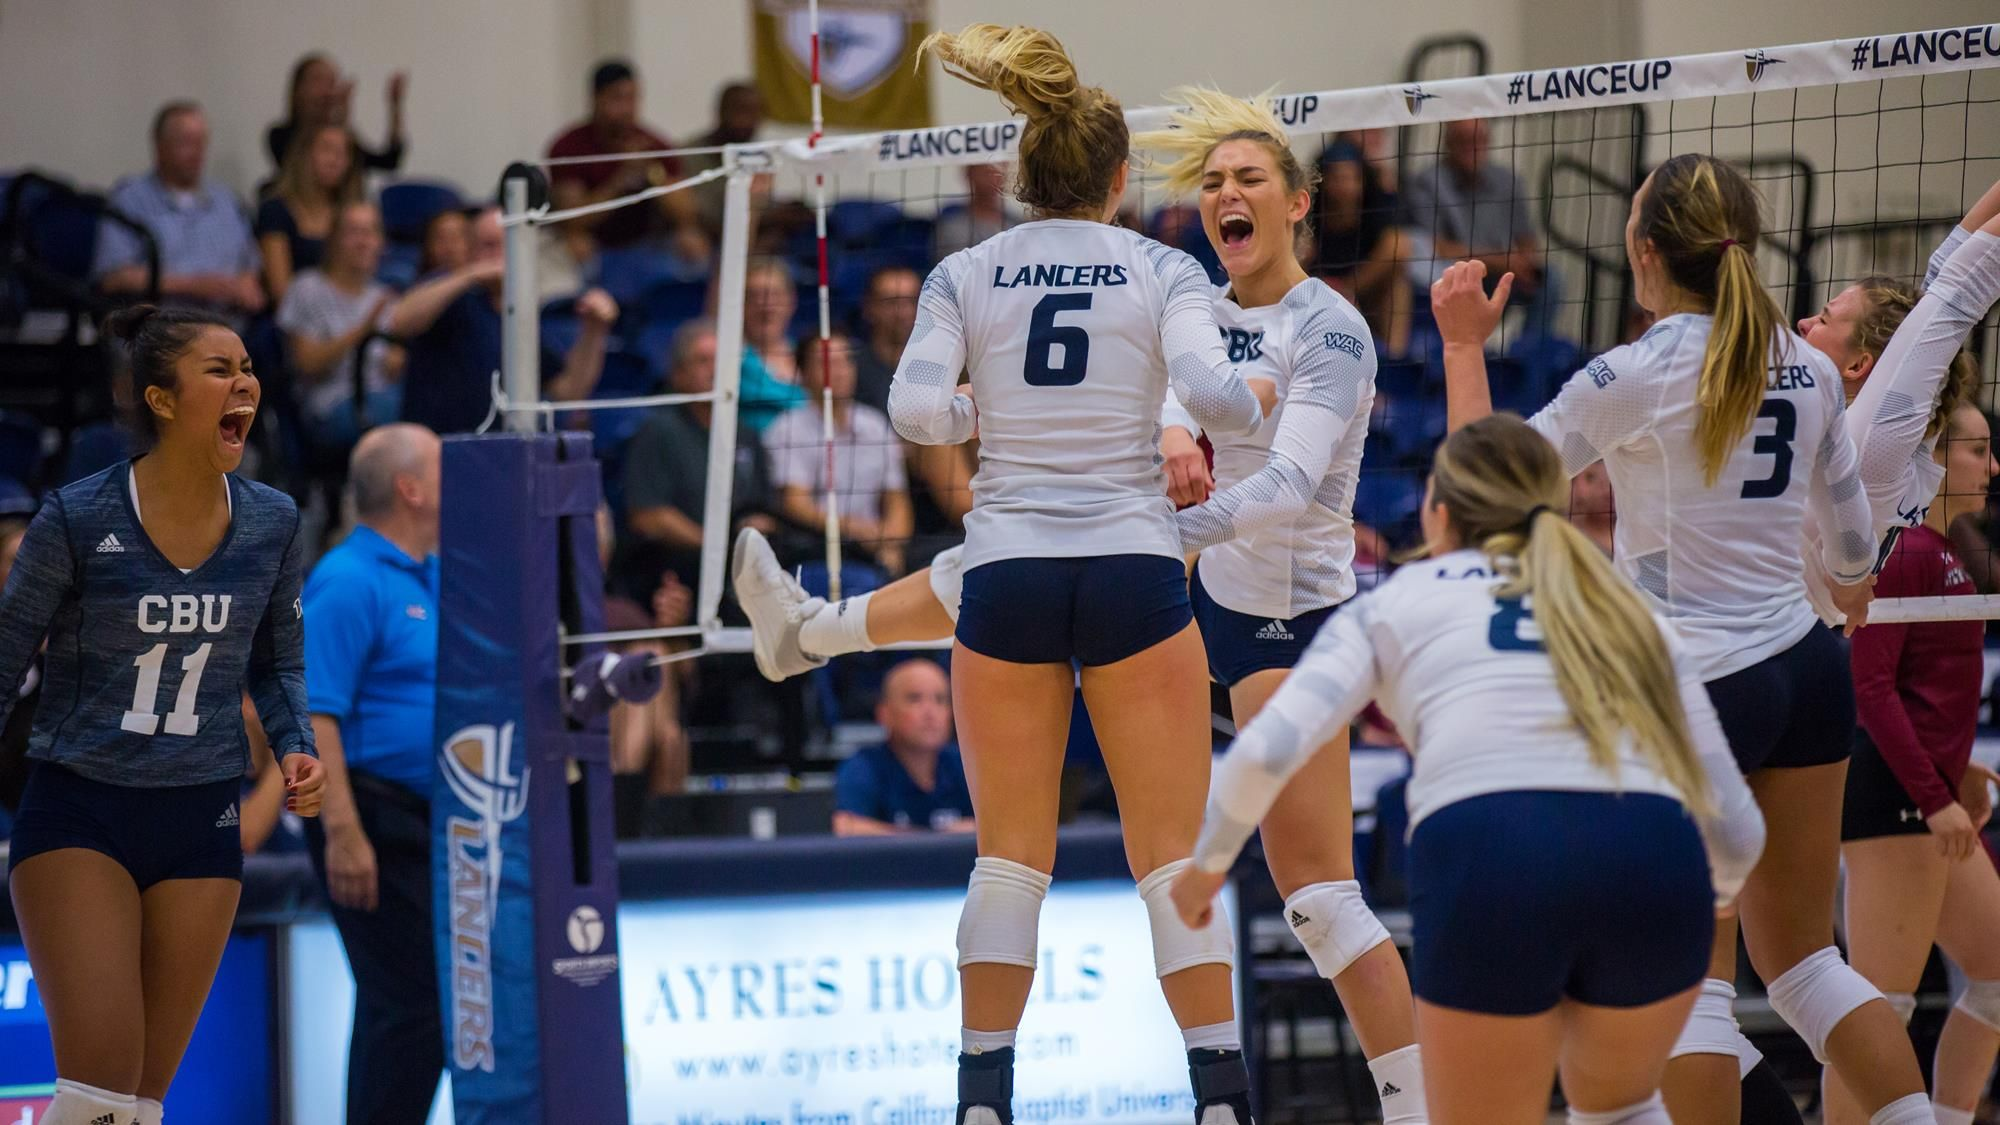 Cbu Takes Down Another Wac Champ In Five Women Volleyball Volleyball Champs